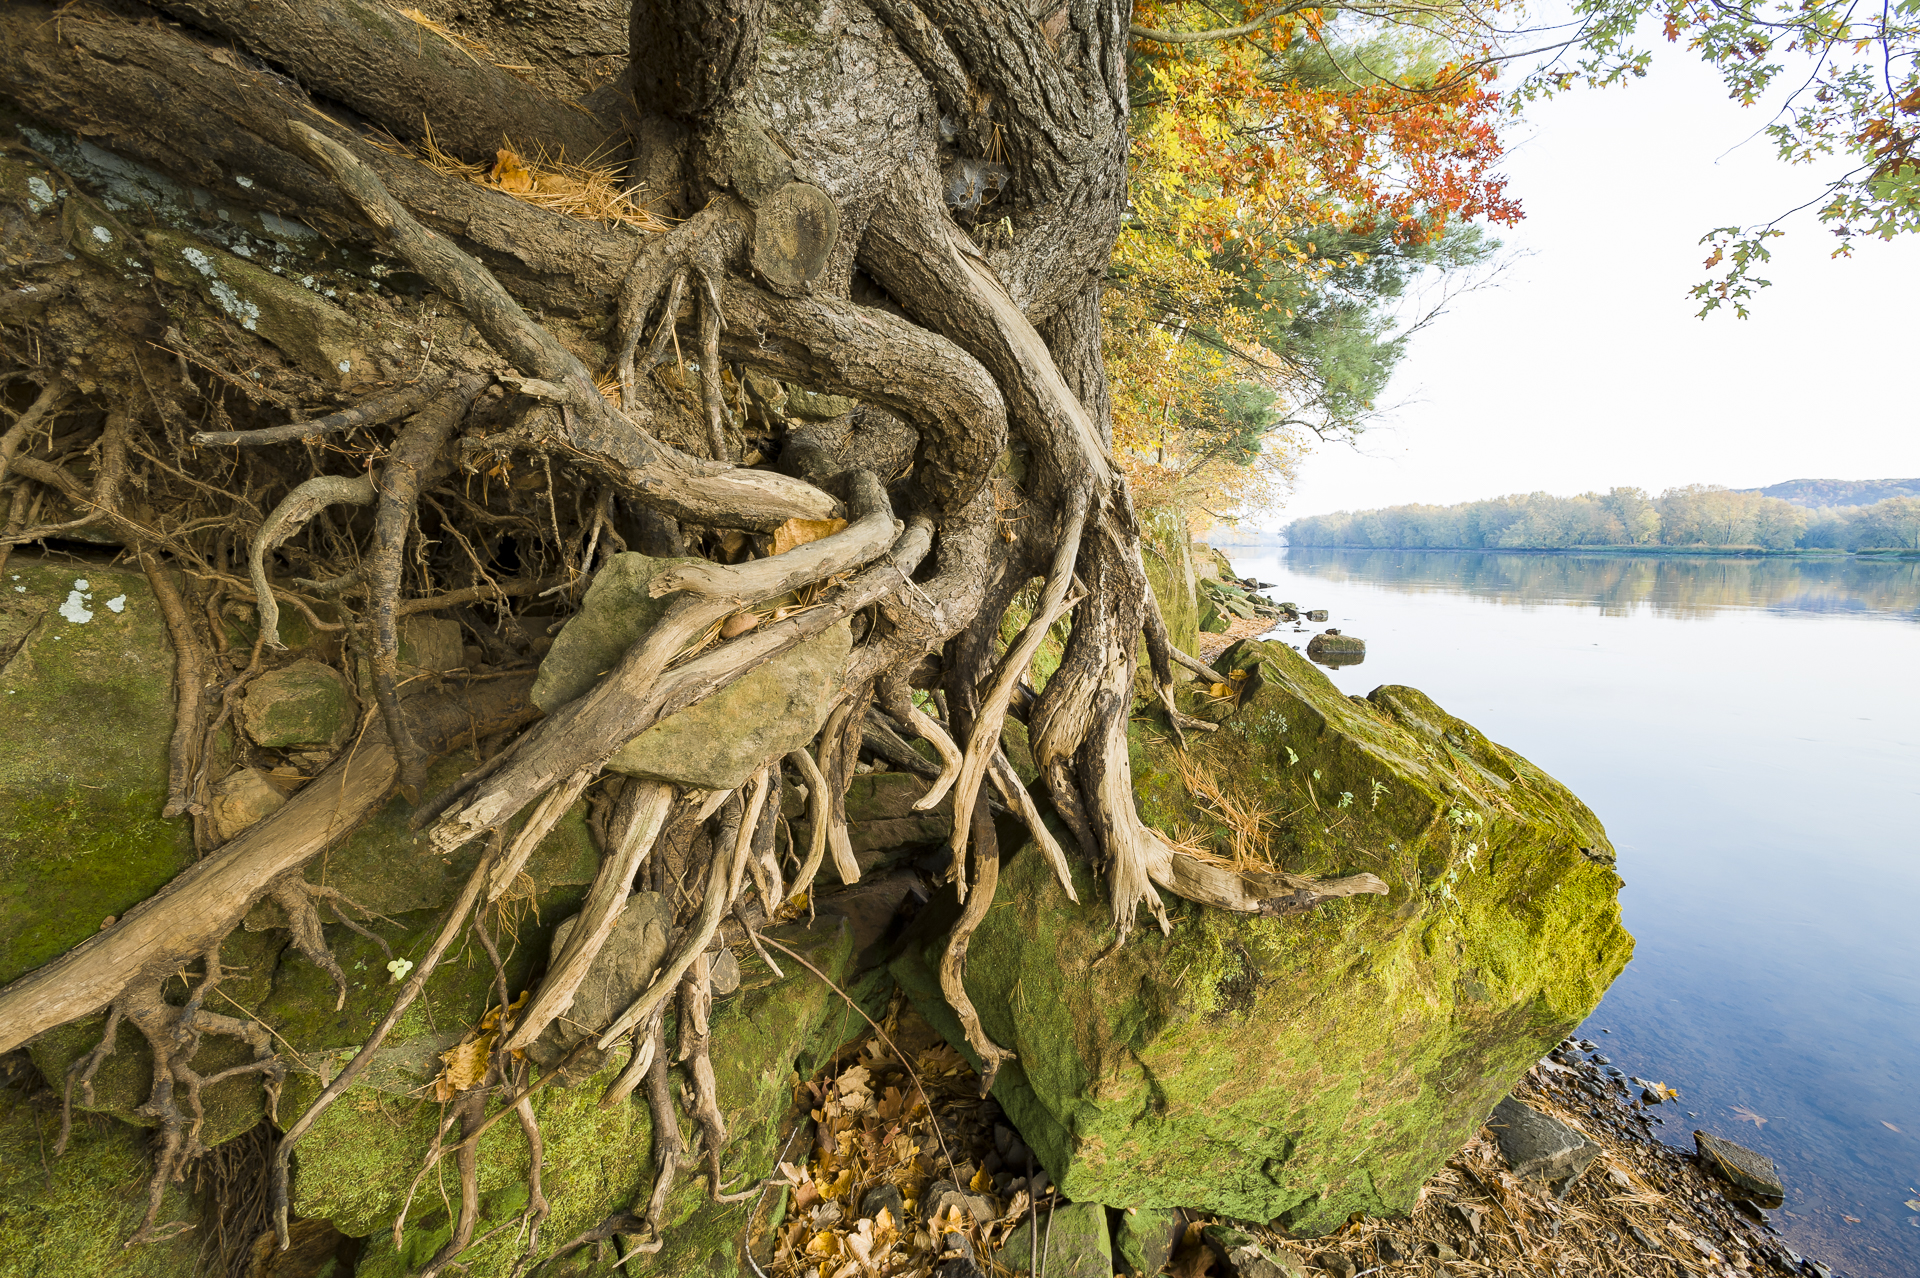 White pine roots: St. Croix River valley